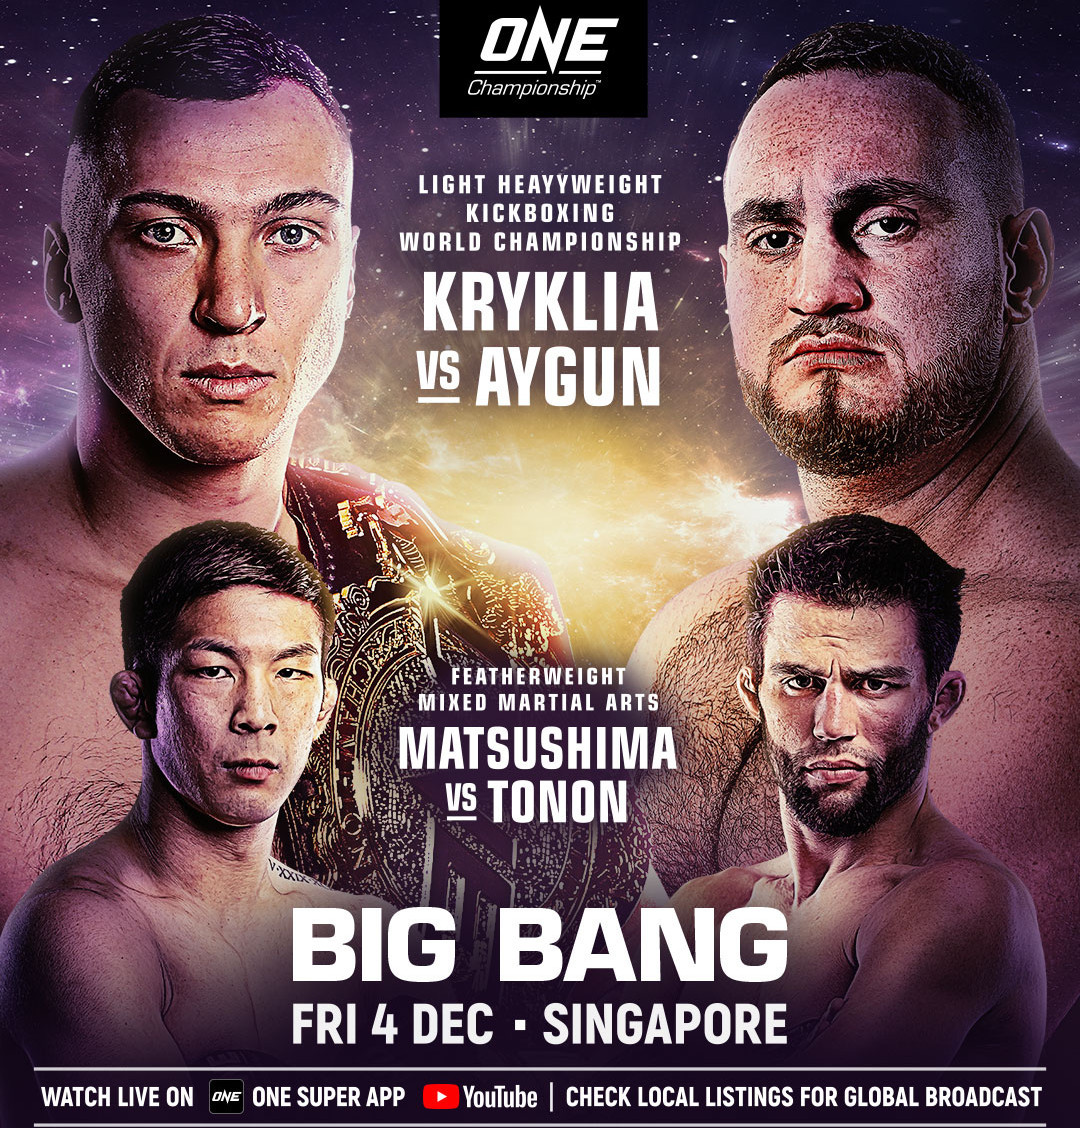 ONE Championship sets big stages for top MMA athletes in two December bouts